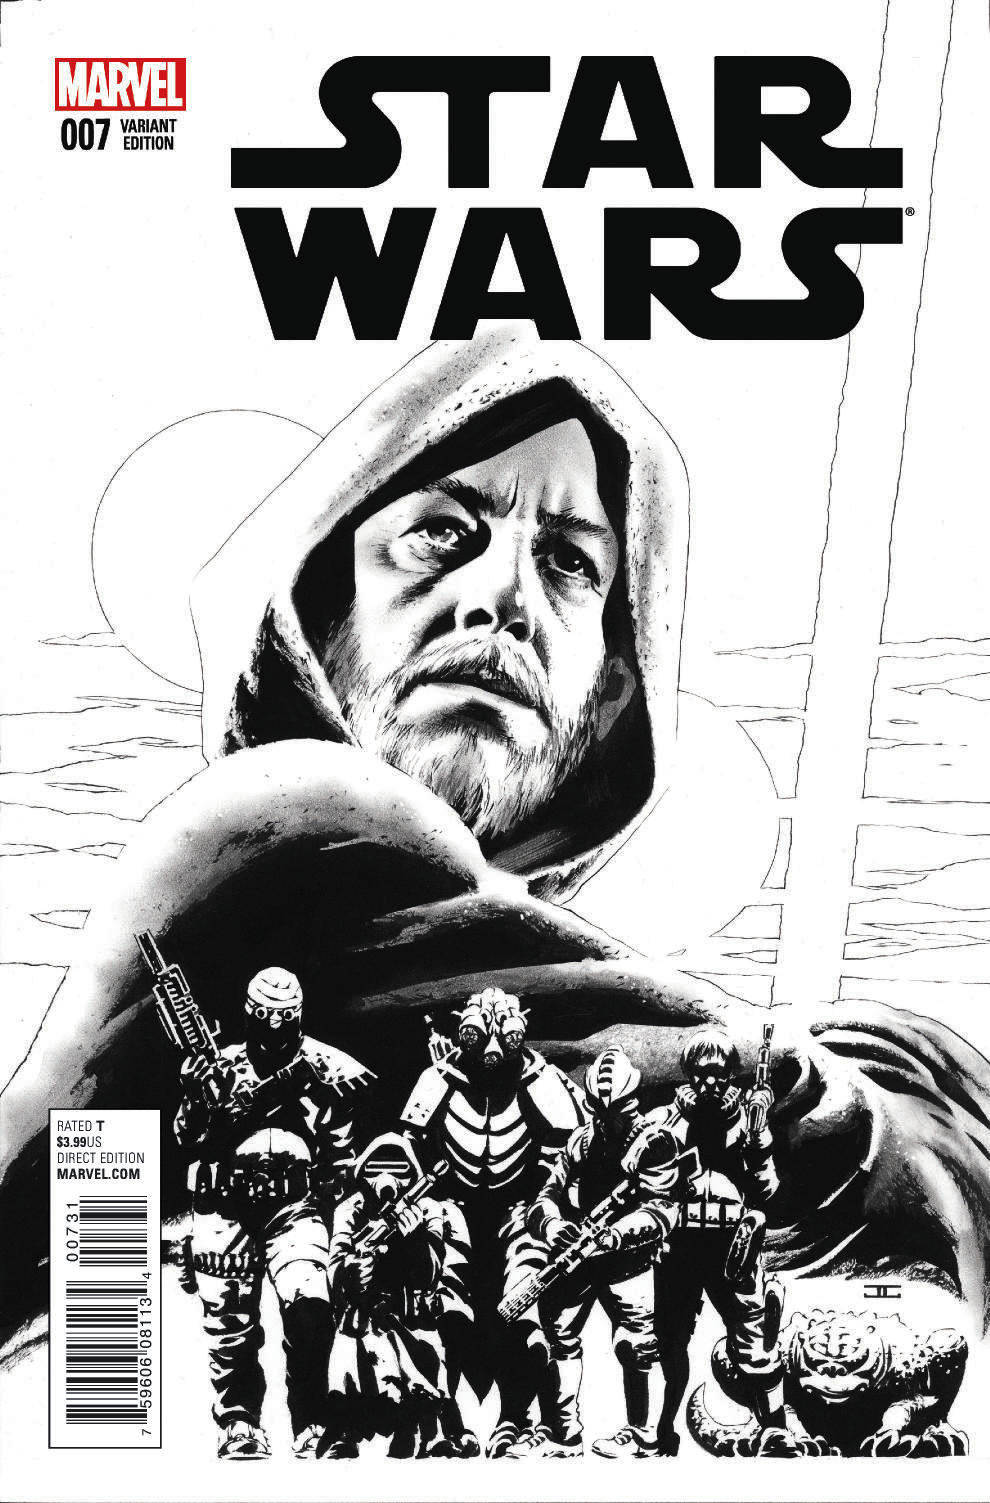 Star_Wars_7_Cassaday_Sketch_Variant